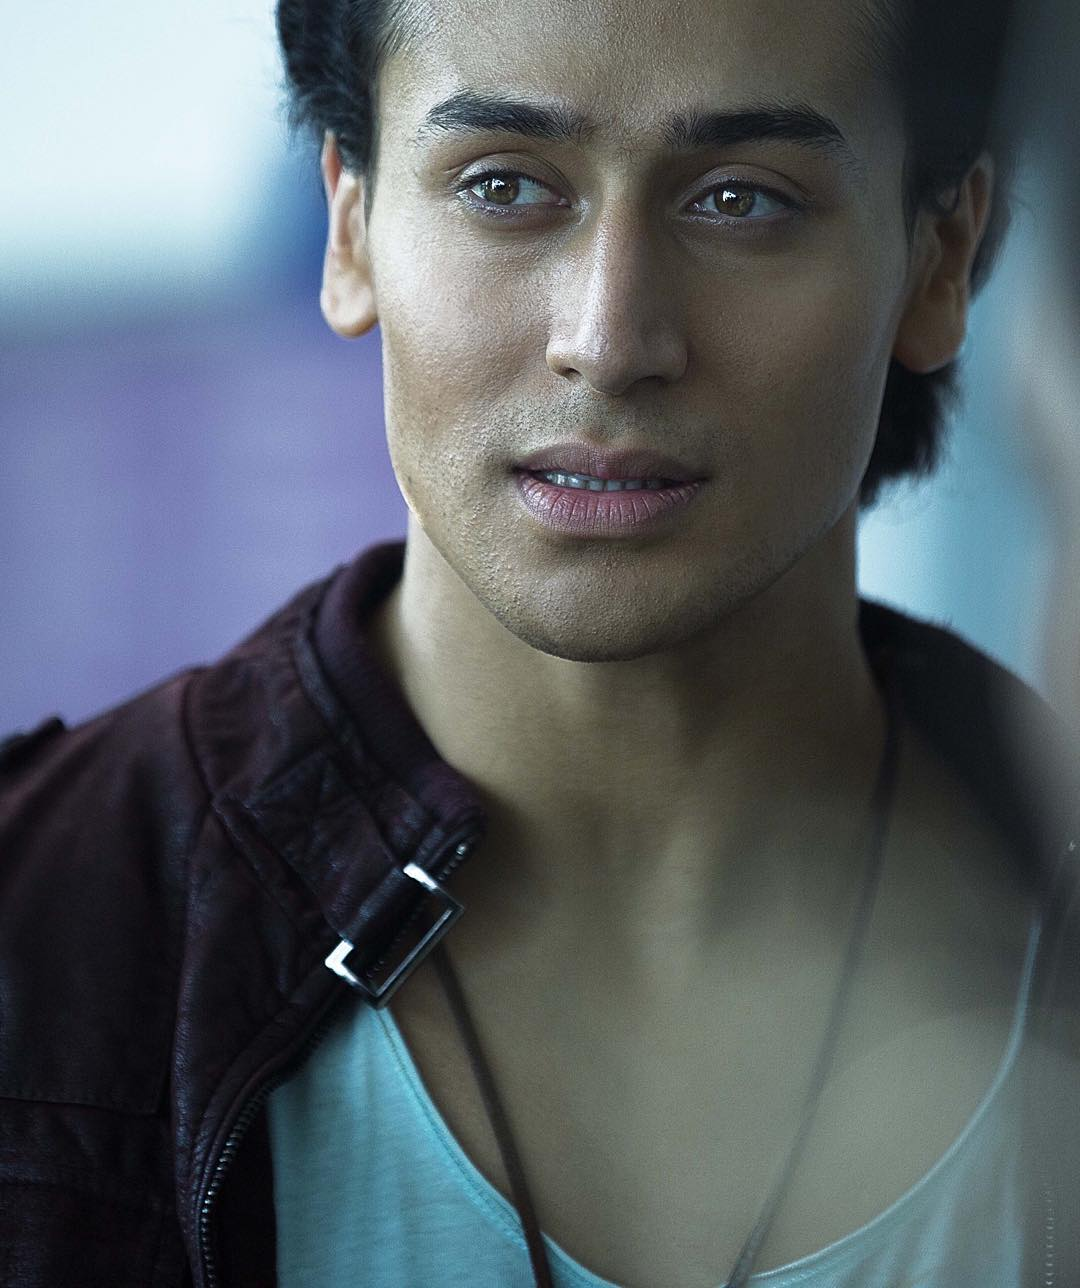 Tiger Shroff Photo | Tiger Shroff Image | Tiger Shroff Picture